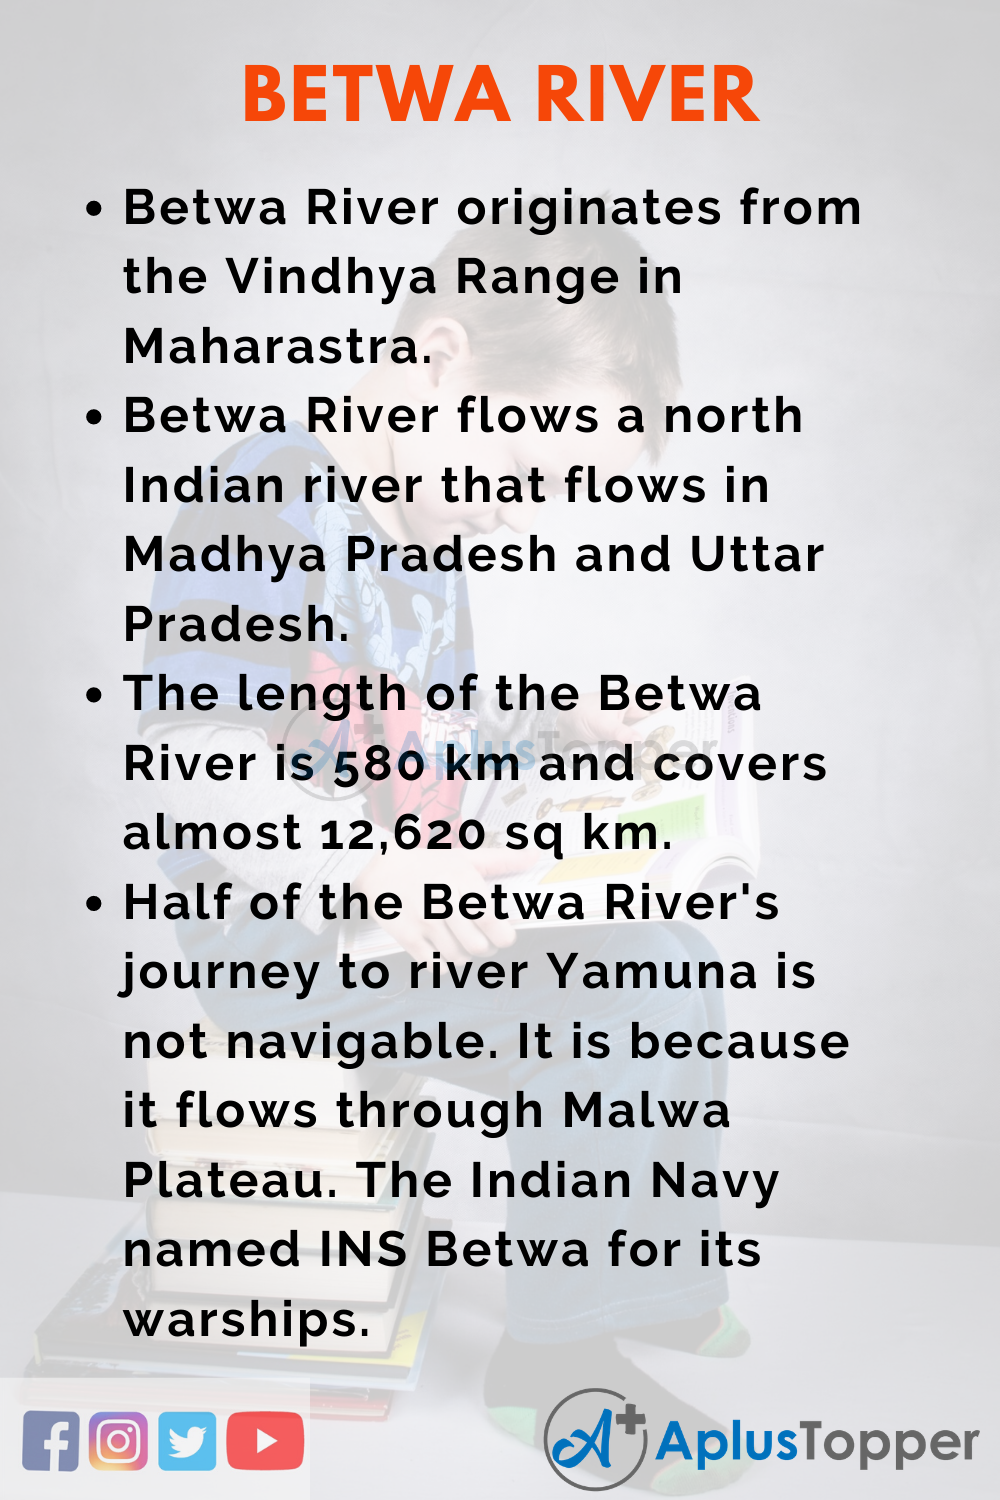 10 Lines on Betwa River for Kids